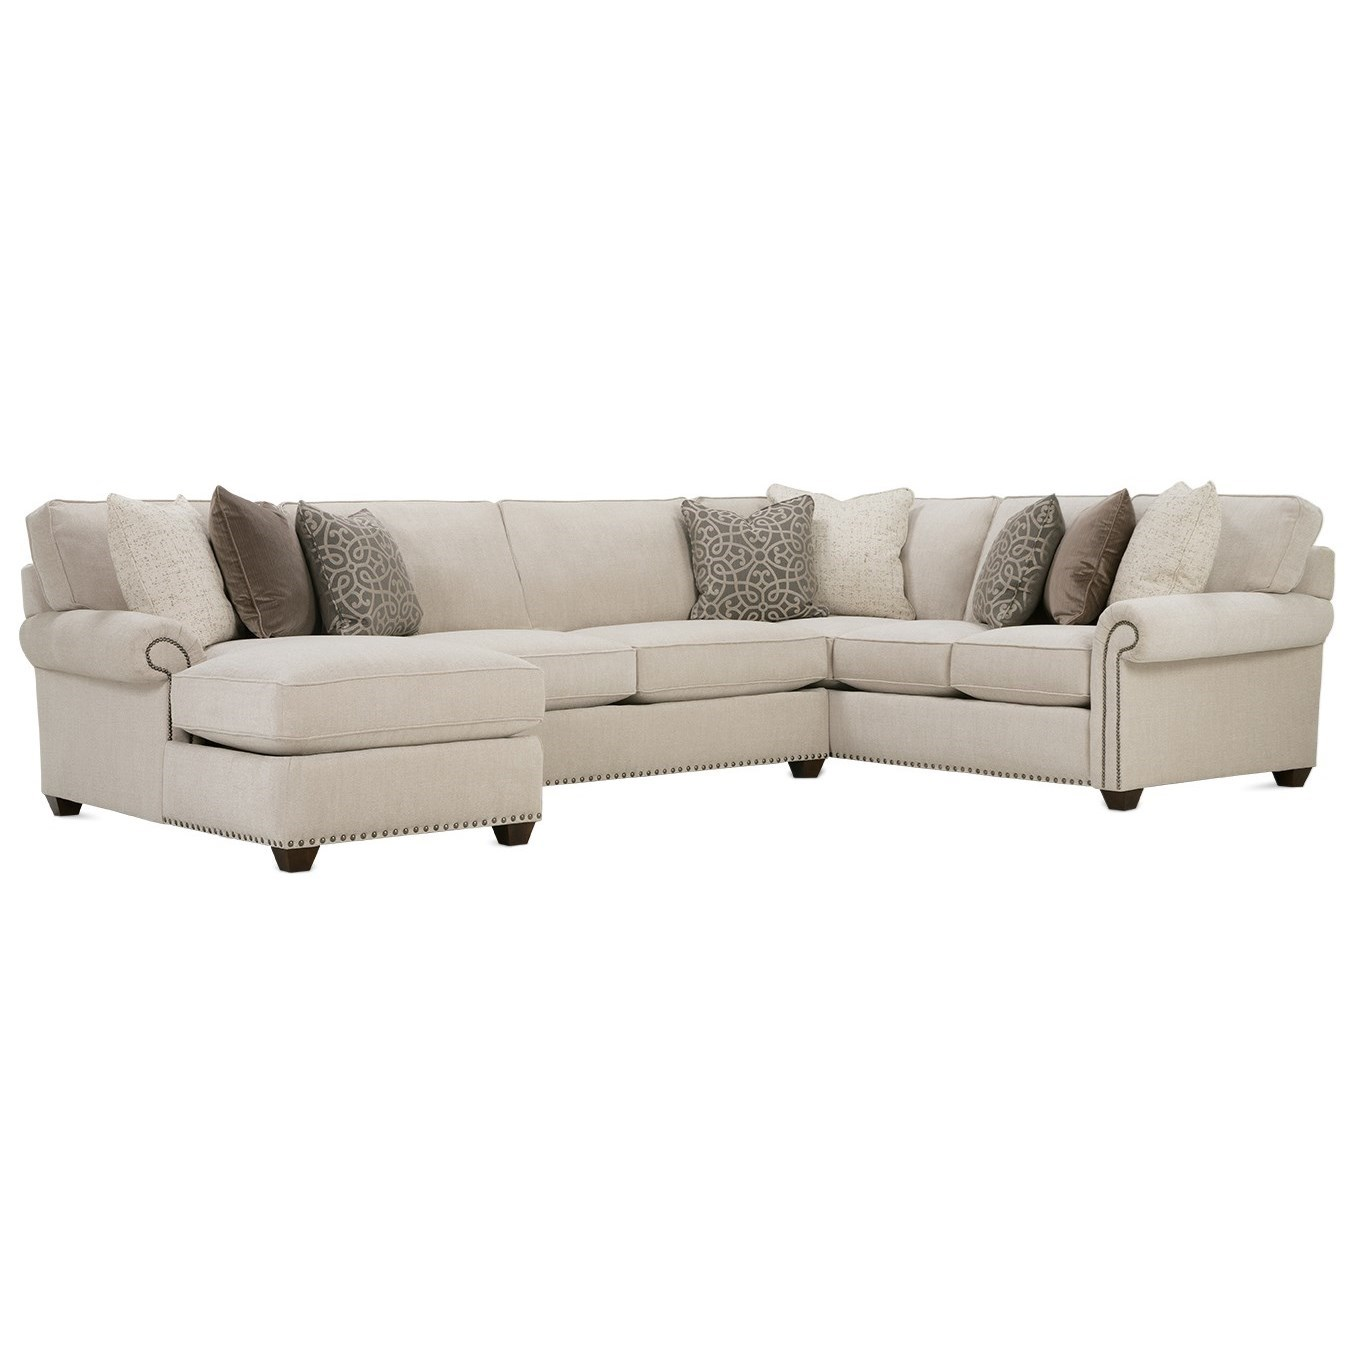 Morgan Traditional Three Piece Sectional Sofa by Rowe at Steger's Furniture